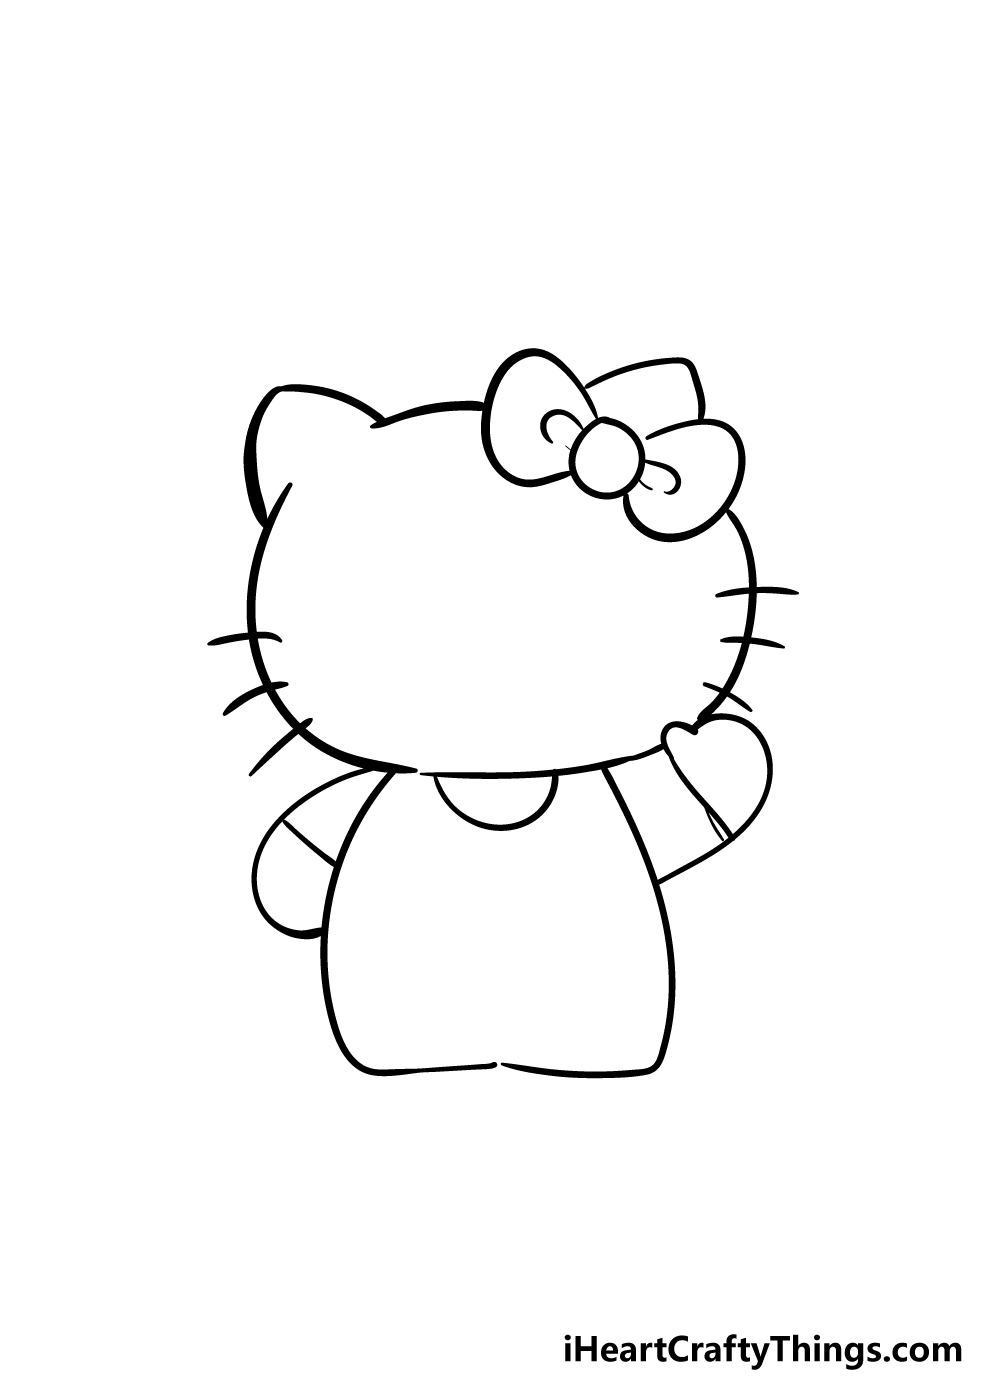 hello kitty drawing step 4